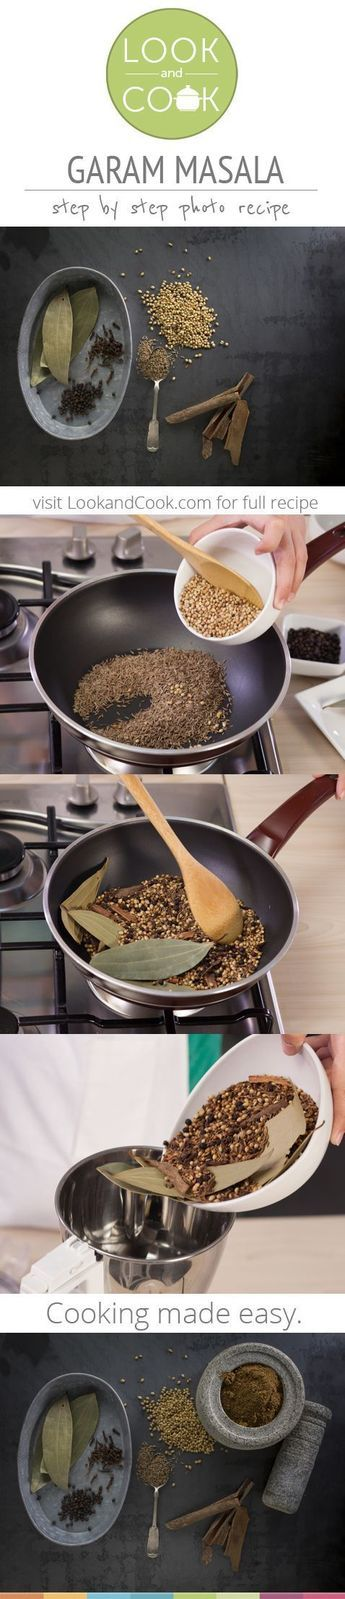 Garam Masala Recipe (#LC14167): This home made Garam Masala recipe is used in most of Indian recipes and can be stored in an airtight container and used everyday.